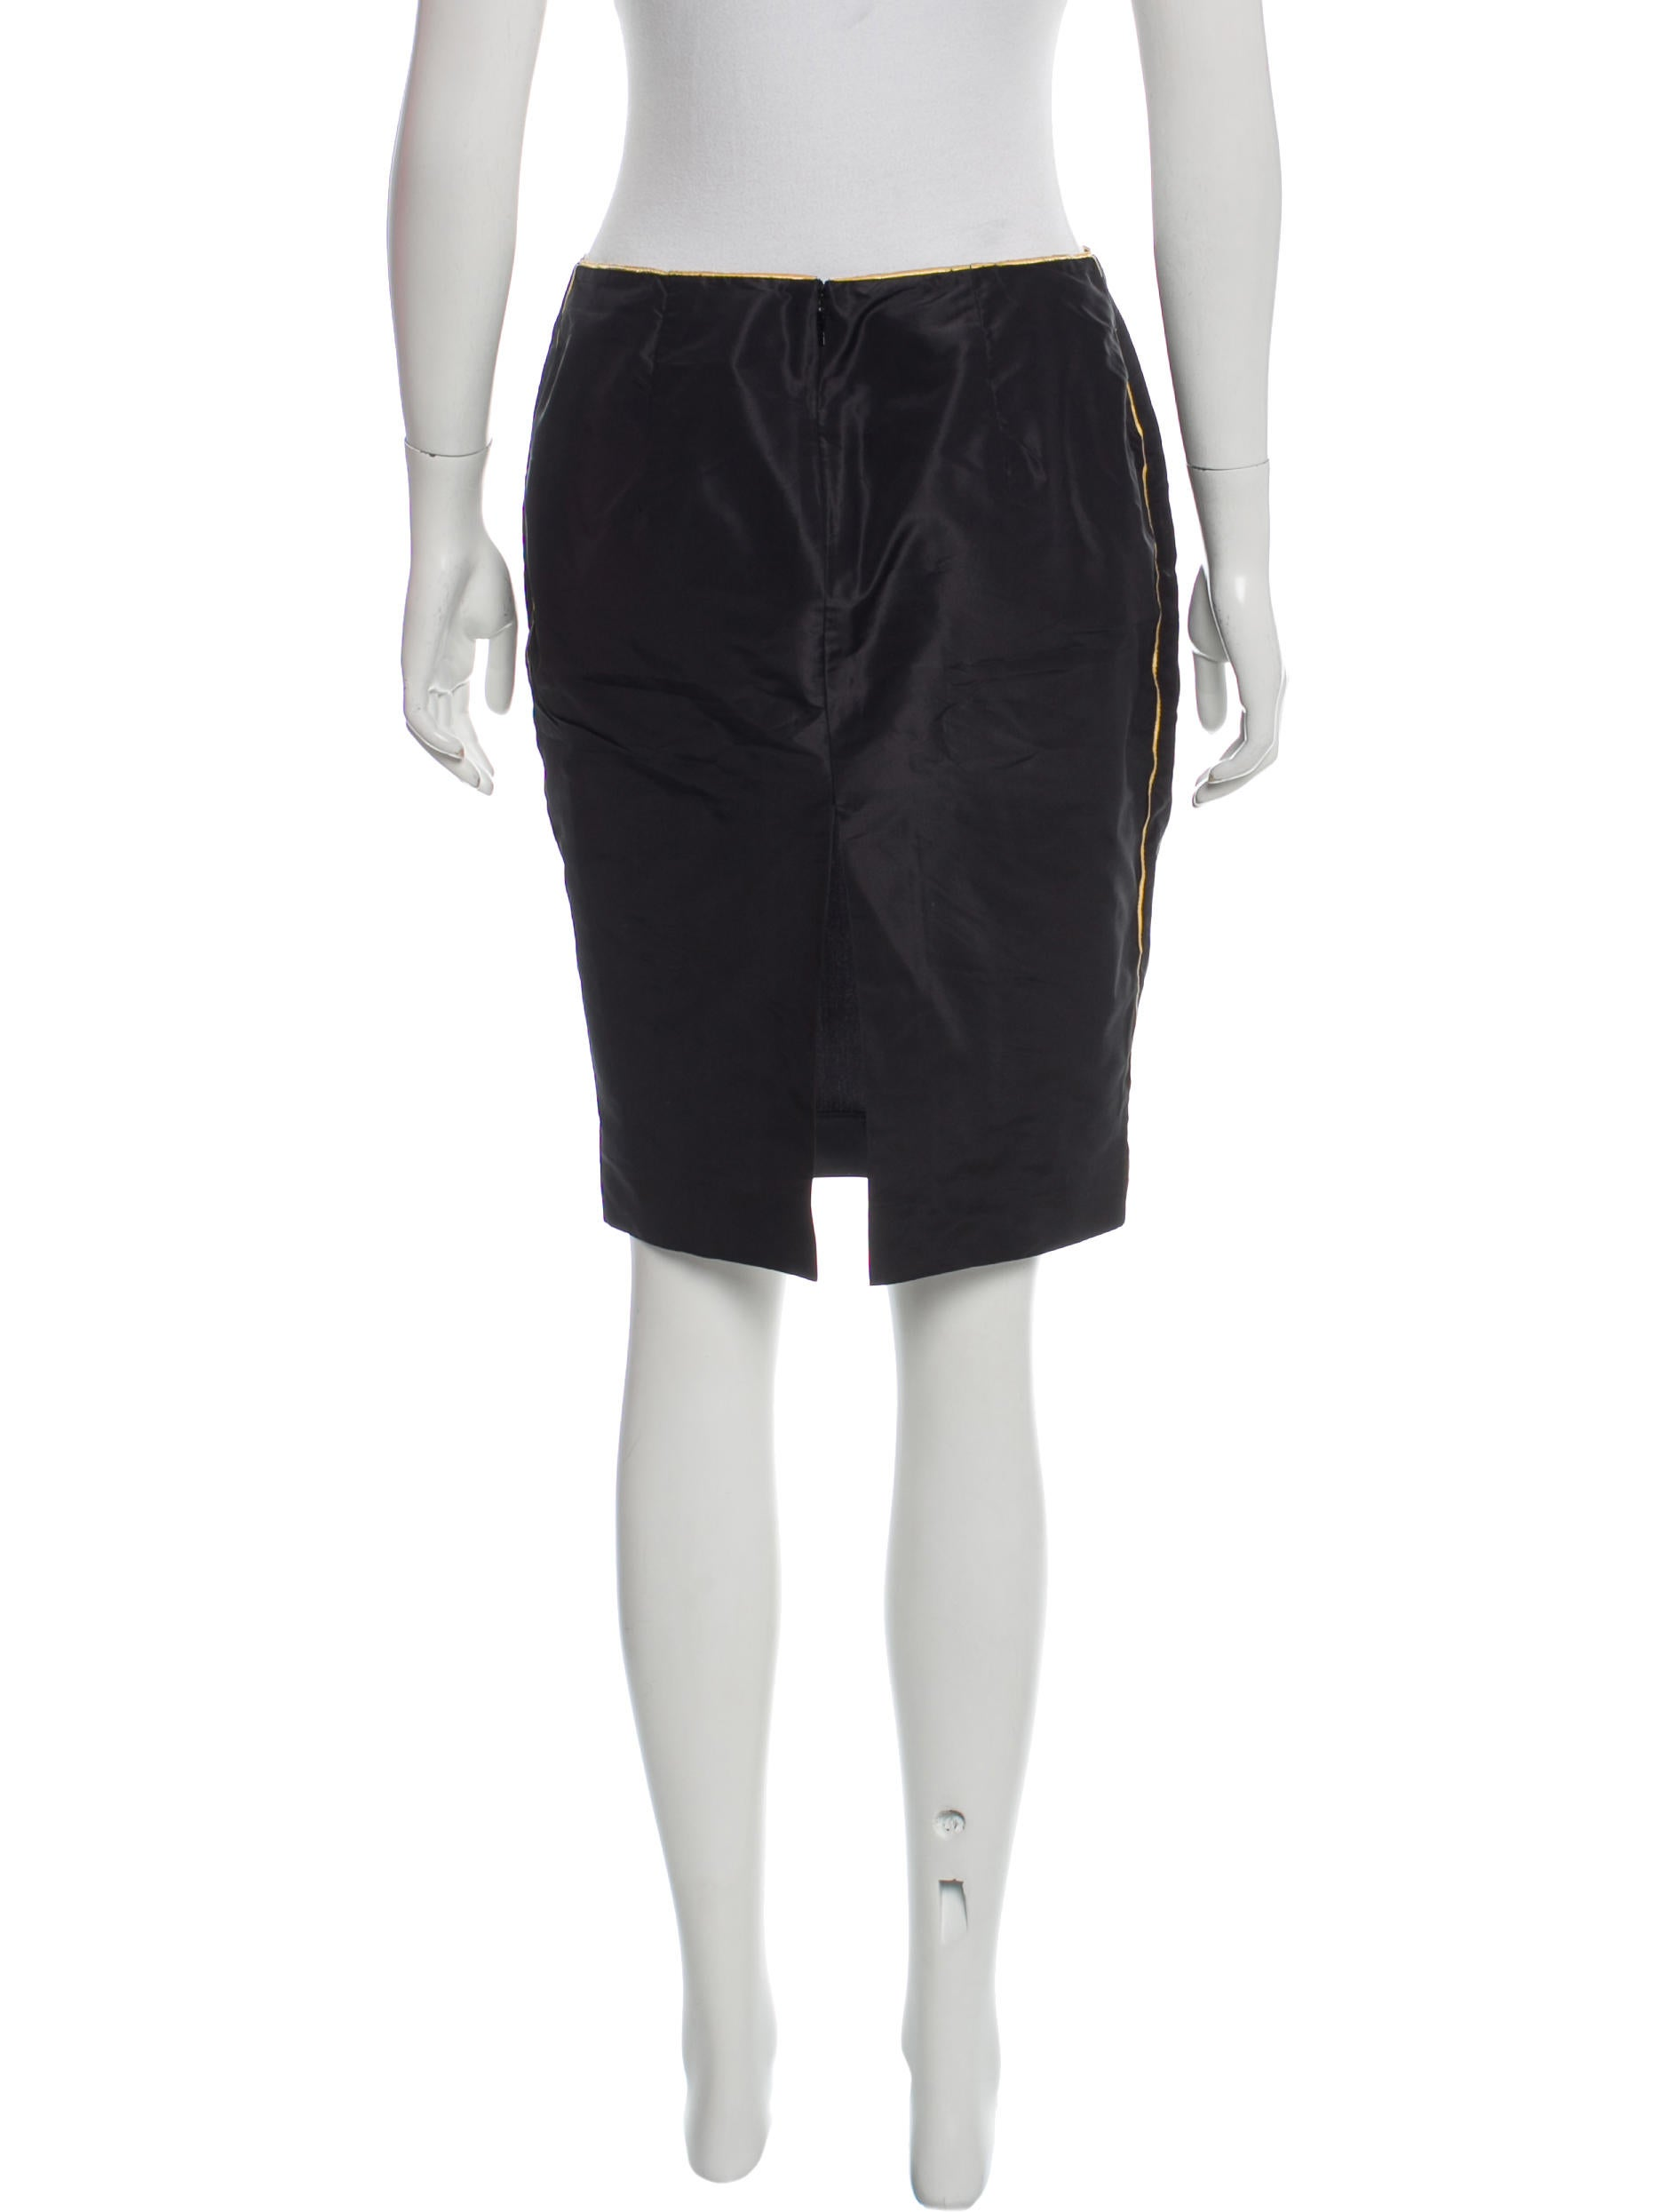 Gucci Silk Pencil Skirt - Clothing - GUC143570 | The RealReal